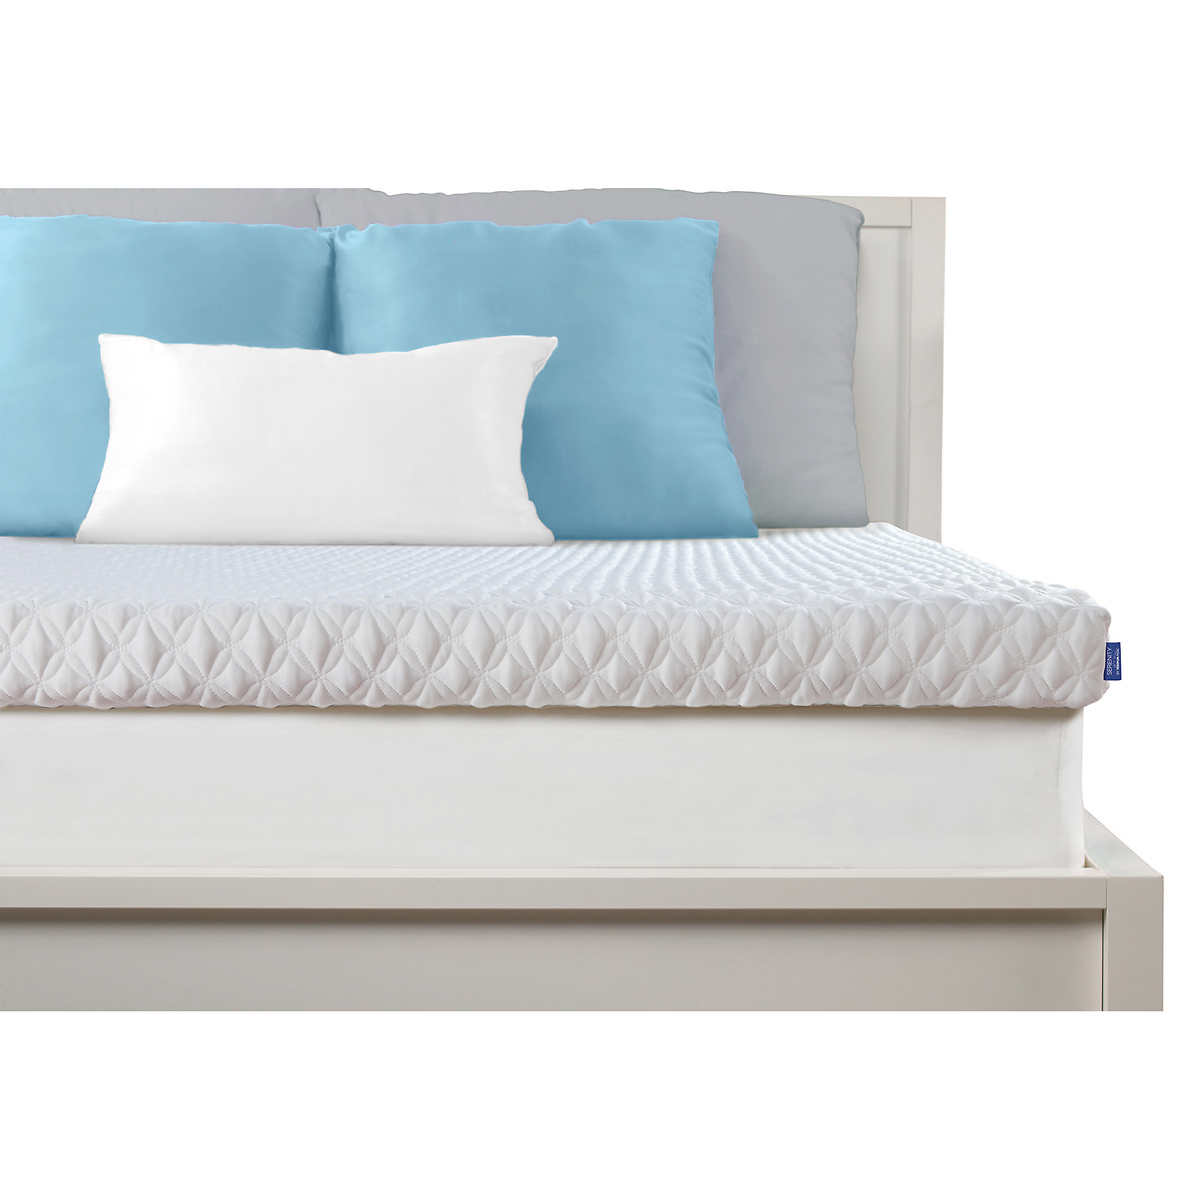 Where Is Temperpedic Made Serenity By Tempur Pedic Memory Foam Mattress Topper Twin